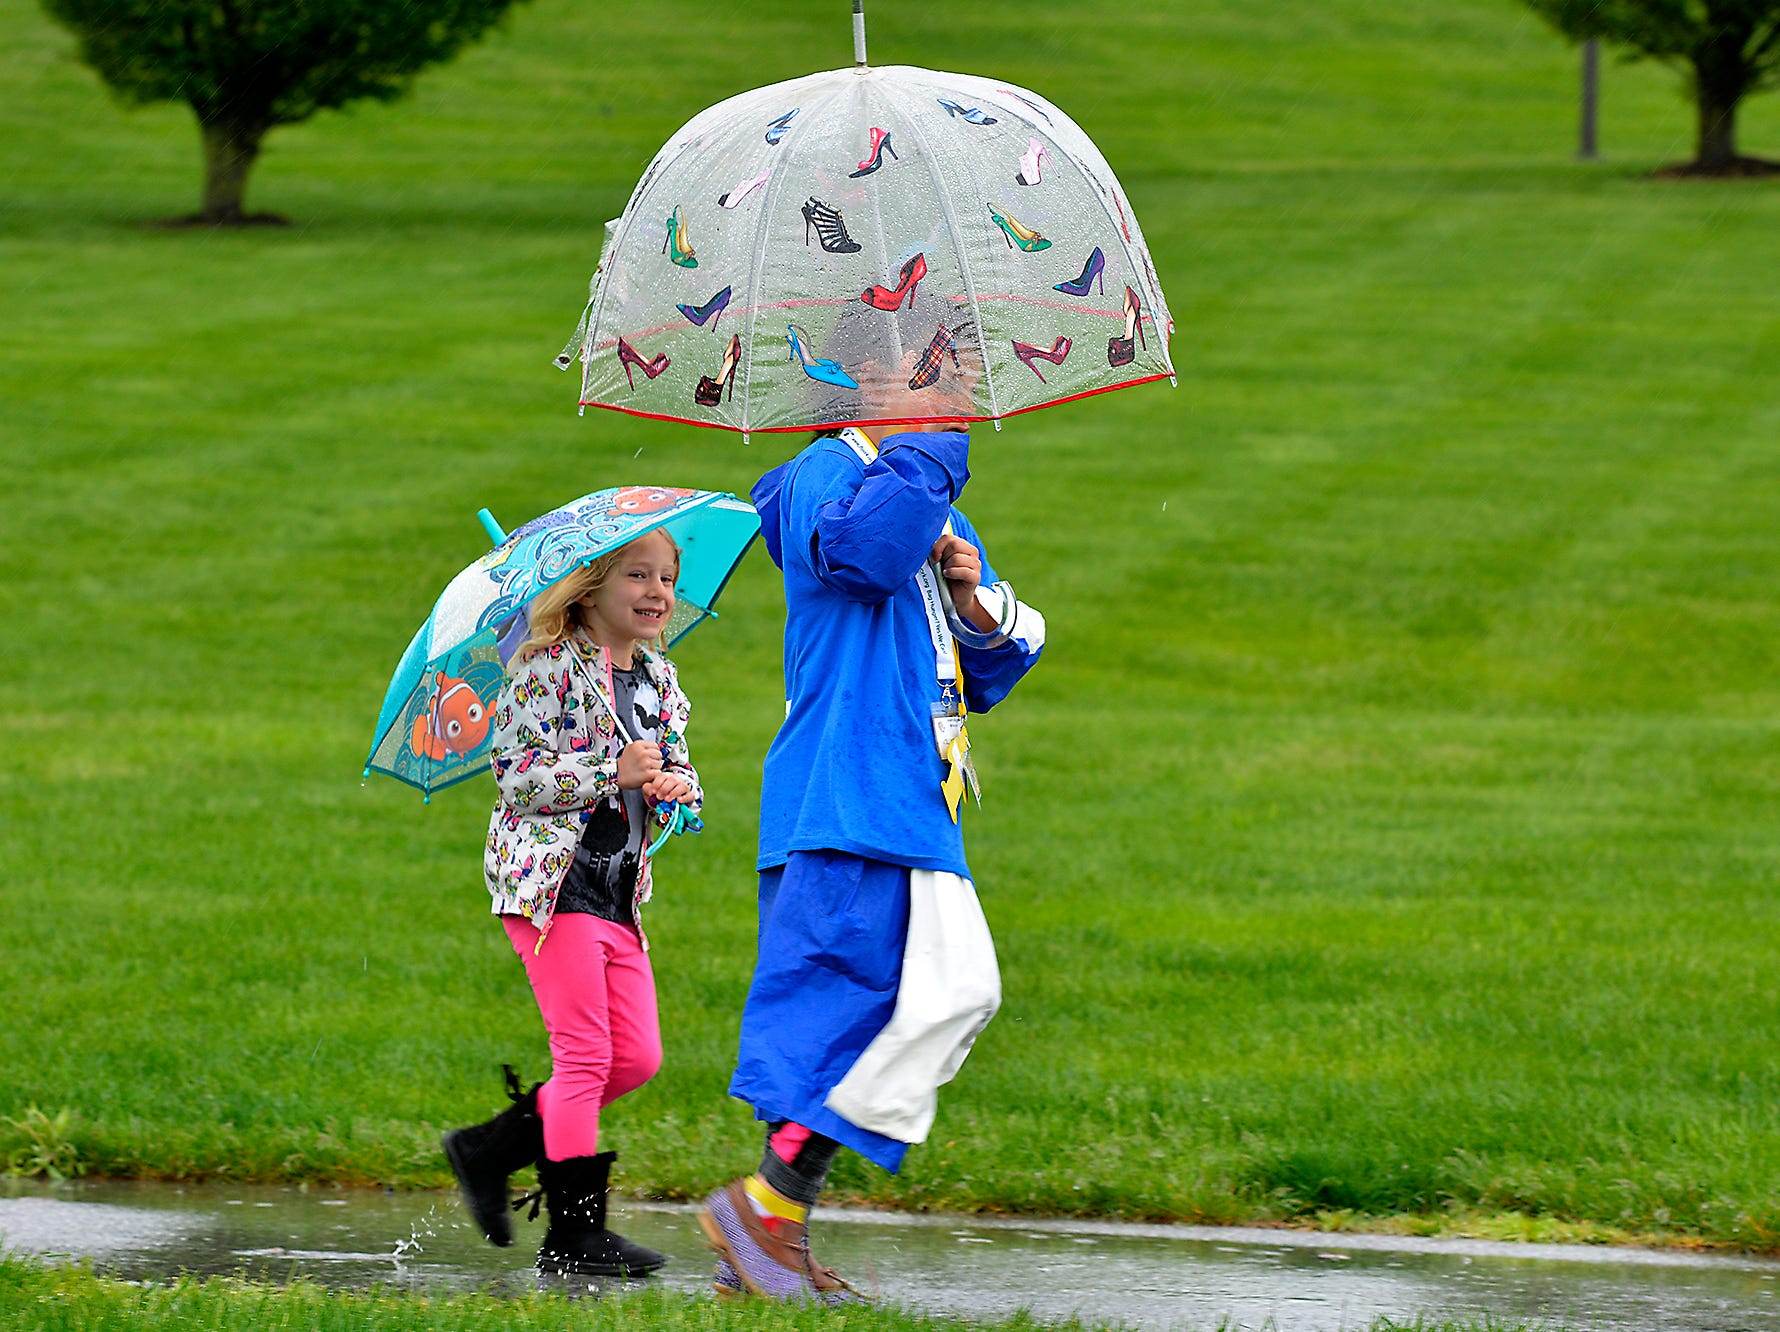 Hannah Kohr, 5 at left, and Juliet Lewin, 10, splash through a puddle while taking part in the Jewish Family Services (JFS) 18th annual Hustle 4 Hunger Walkathon at Springettsbury Township Park, Sunday, May 5, 2019.